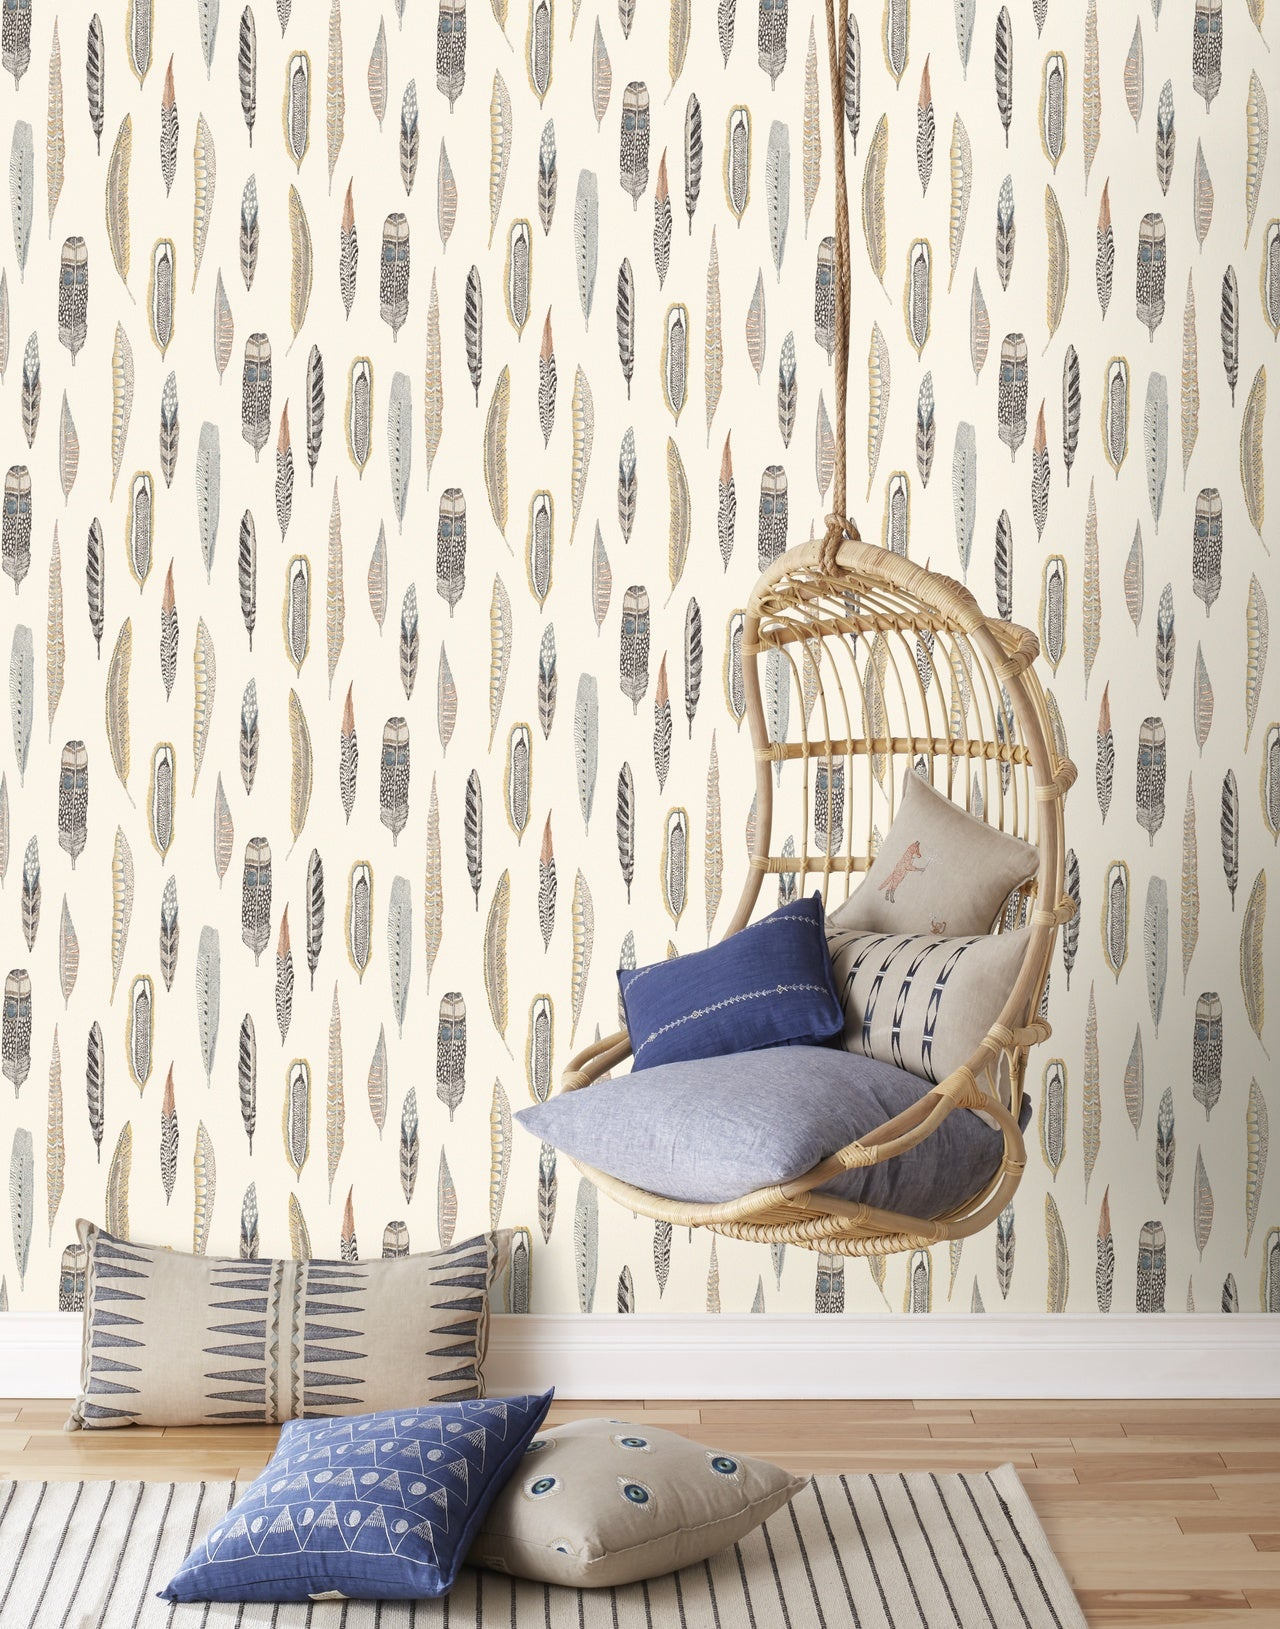 Plumes wallpaper in Natural by Coral & Tusk for Hygge & West